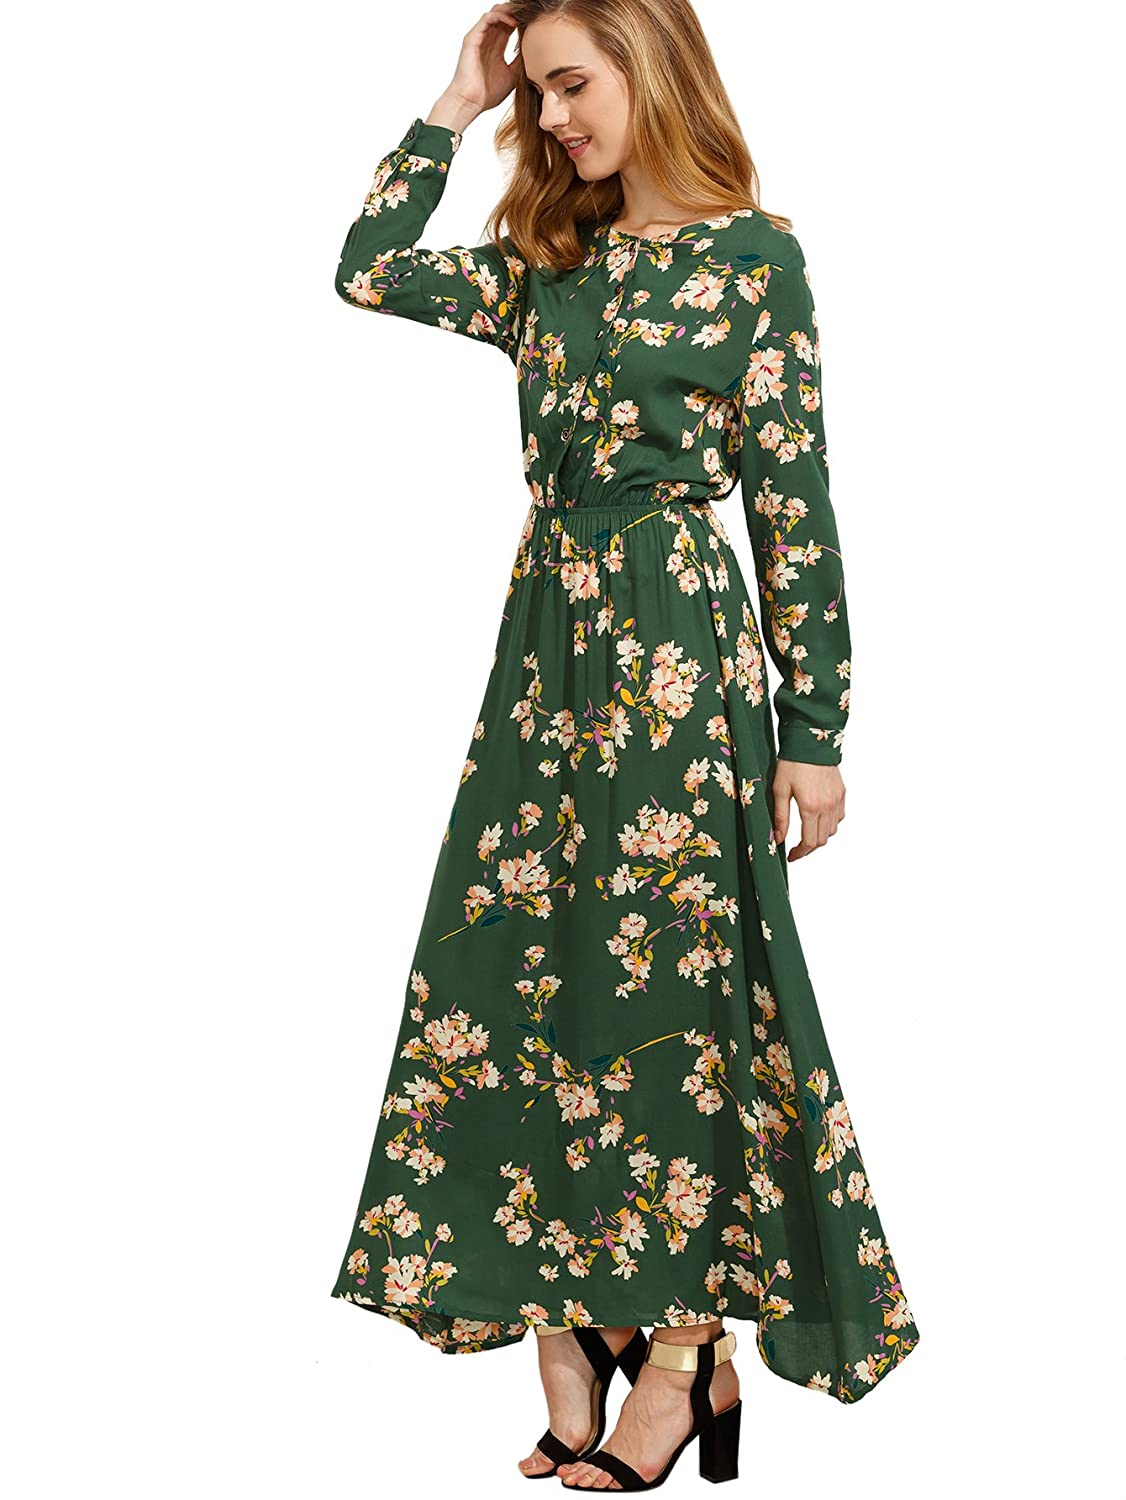 0cf4c39b560f Floerns Women s Long Sleeve Floral Print Button Casual Maxi Dress at Amazon  Women s Clothing store